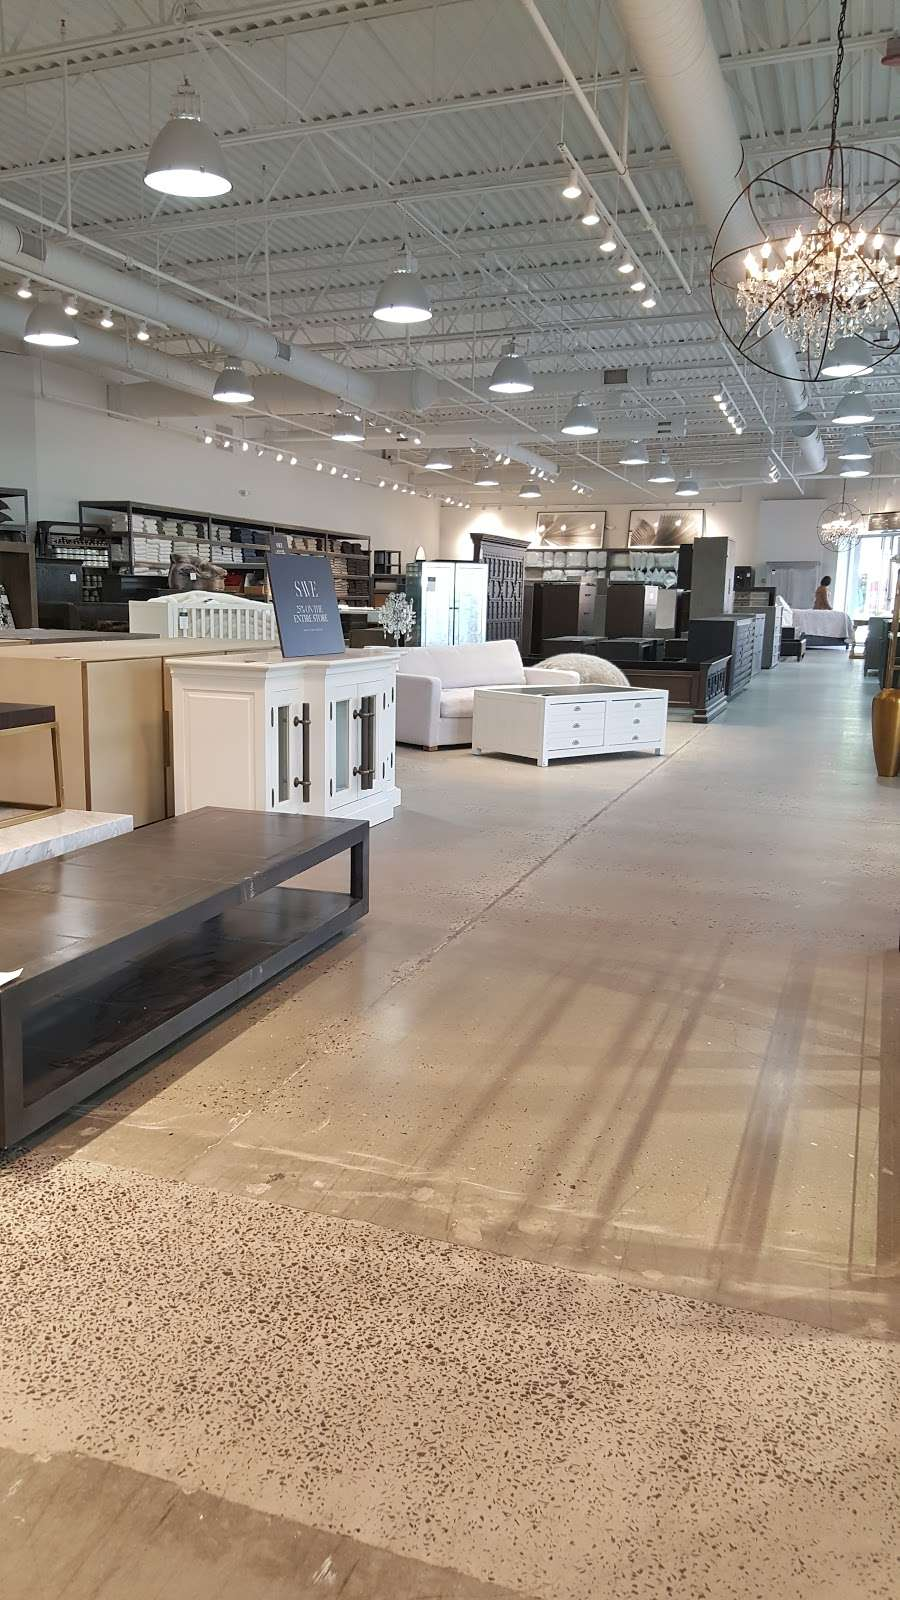 Restoration Hardware Outlet - furniture store  | Photo 8 of 10 | Address: 18 West Lightcap Rd Suite 501, Sanatoga, PA 19464, USA | Phone: (610) 970-1518